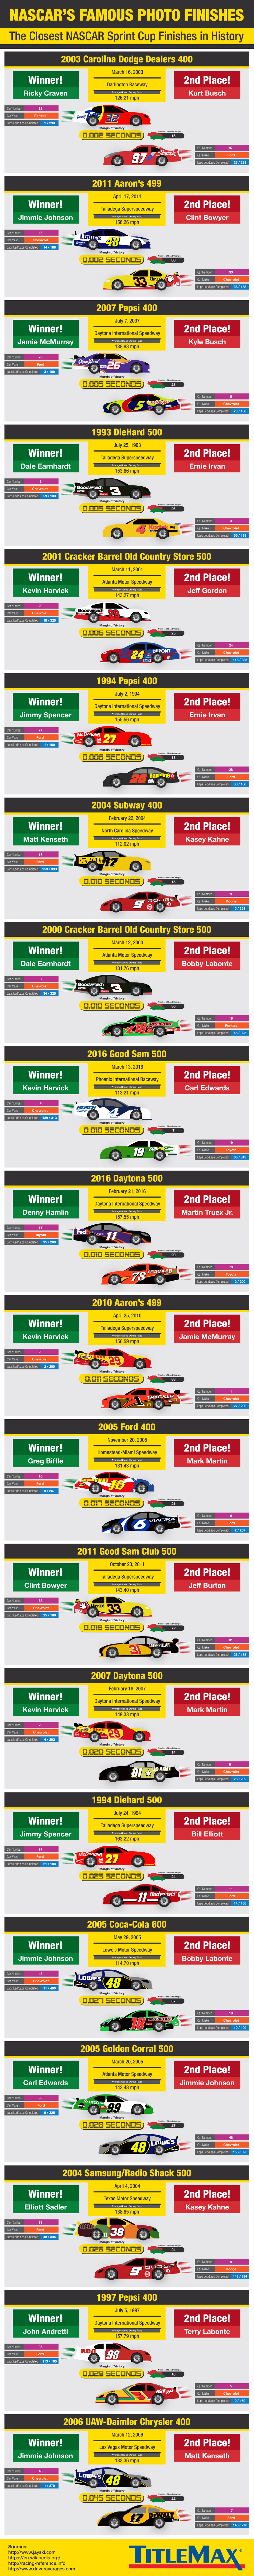 The Closest NASCAR Sprint Cup Finishes in History